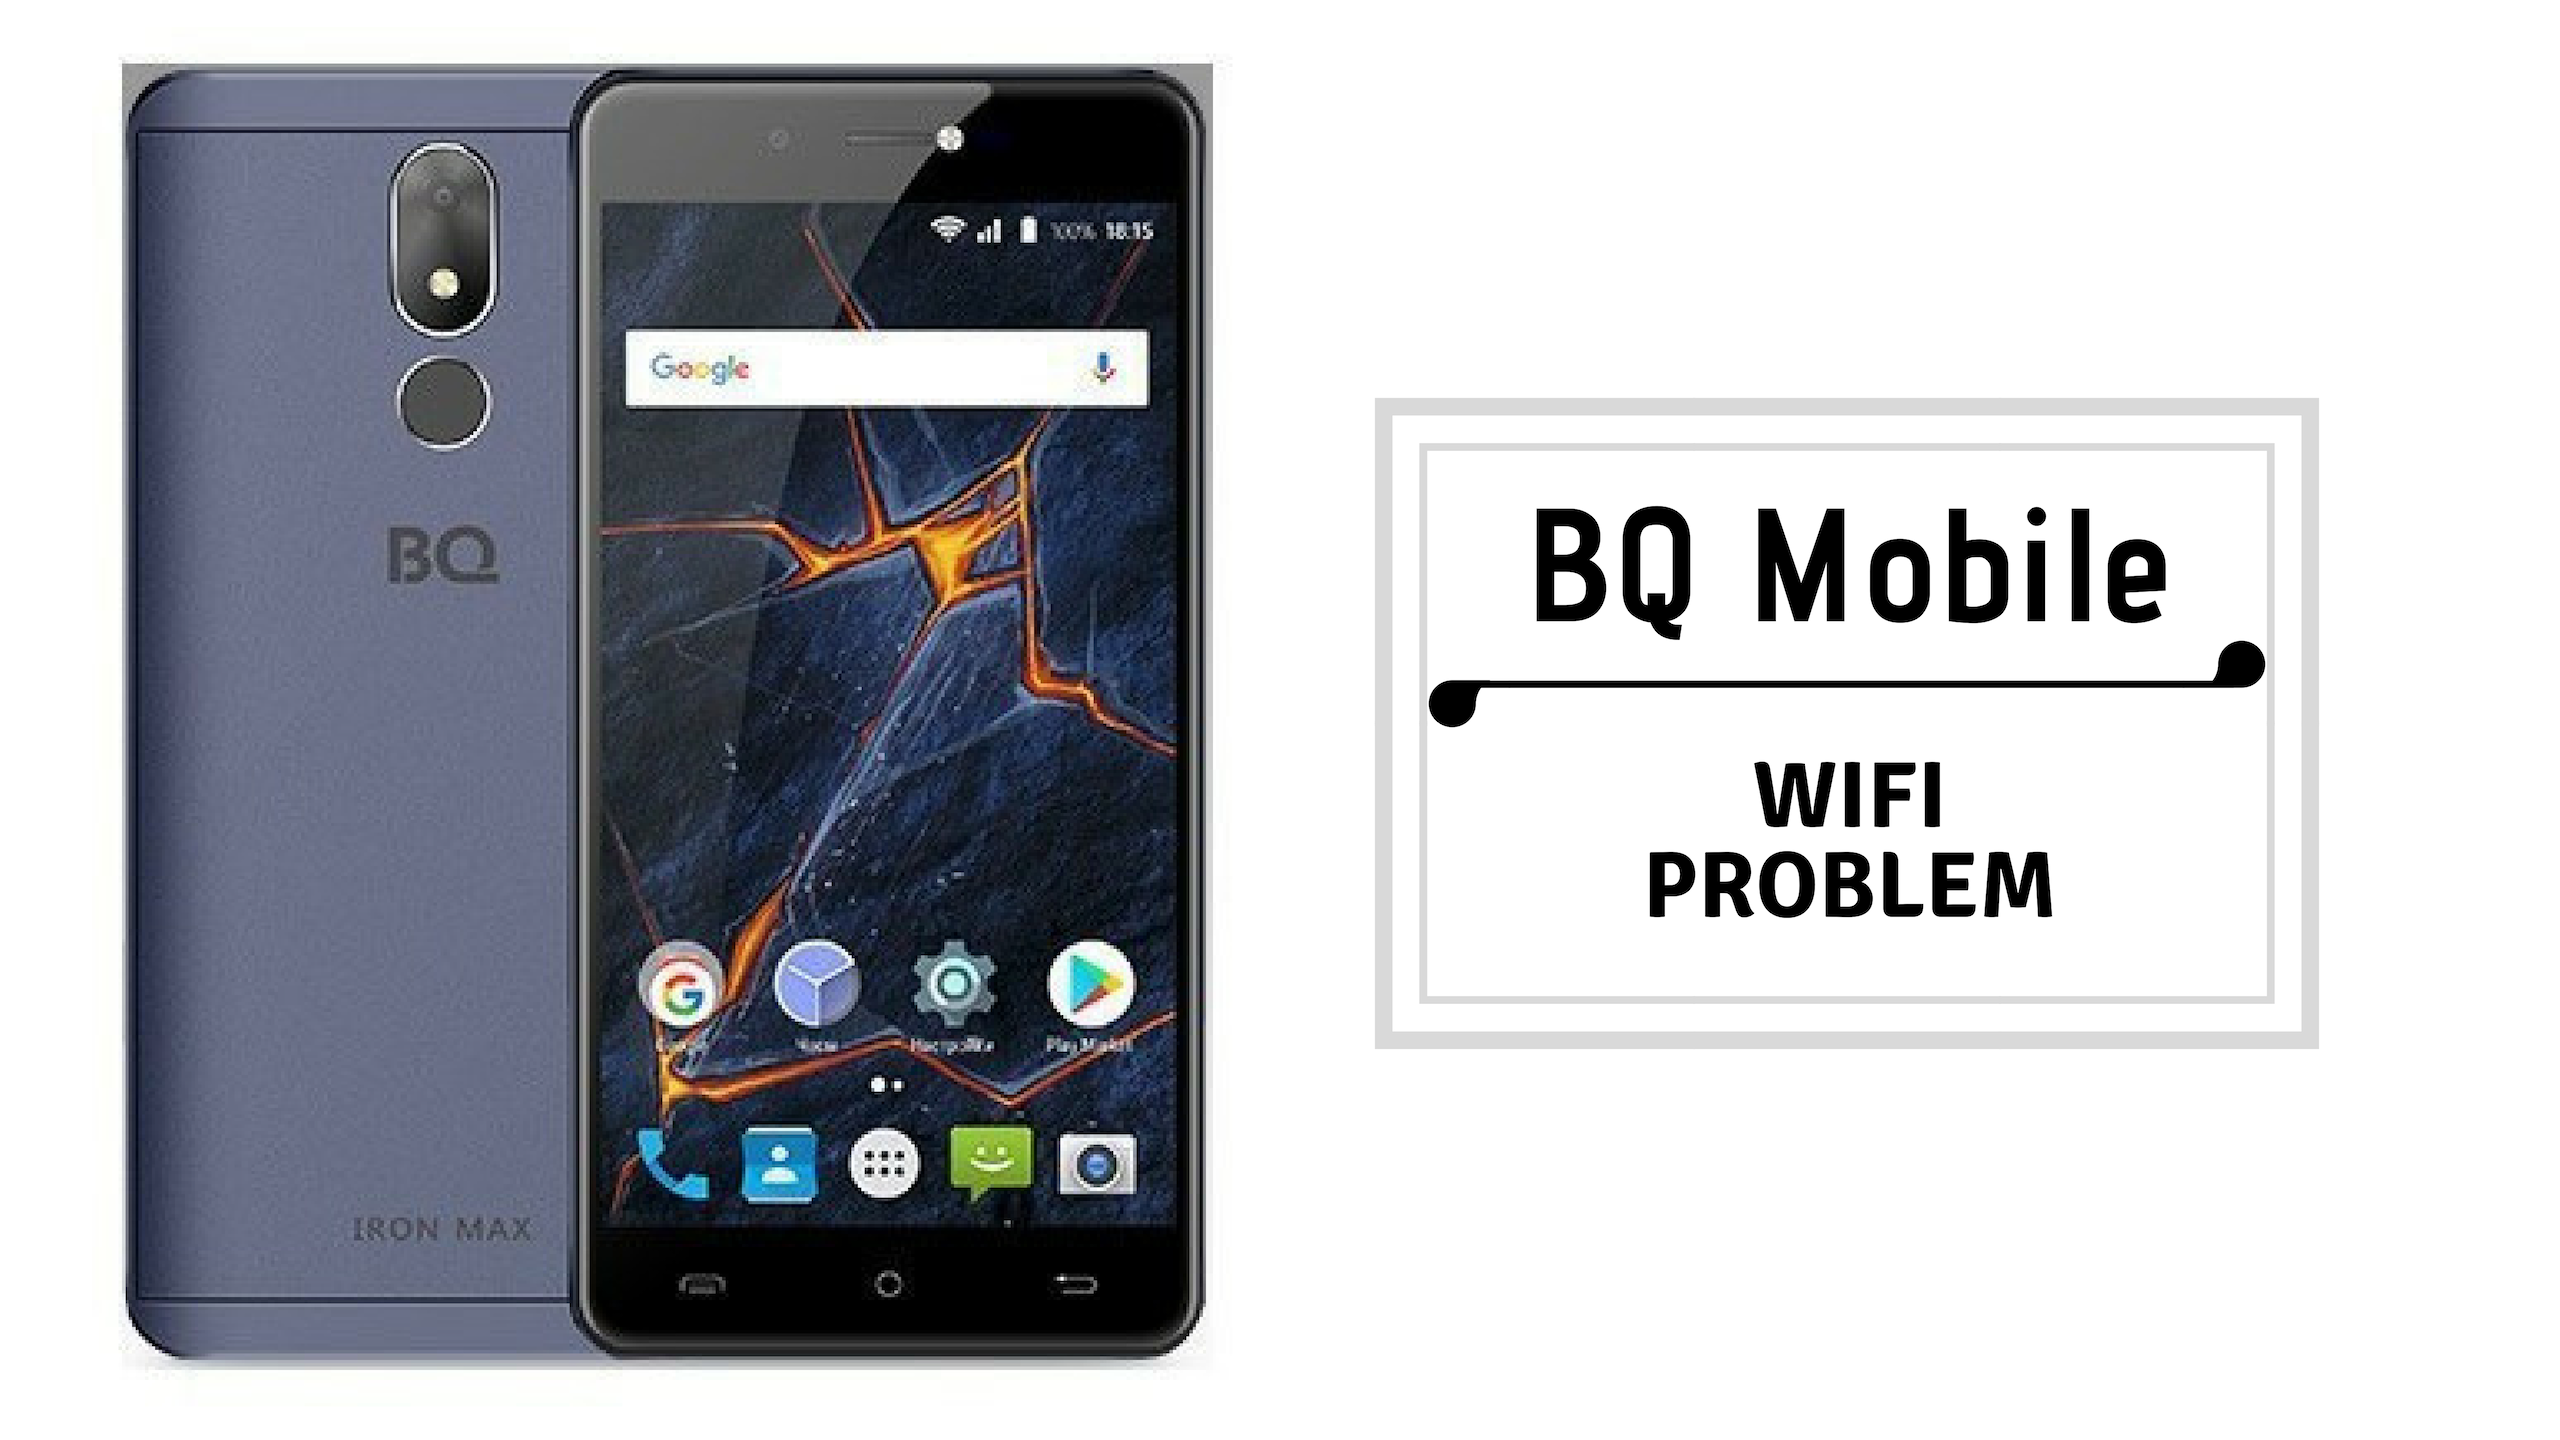 Quick Guide To Fix BQ Mobile Wifi Problems [Troubleshoot]